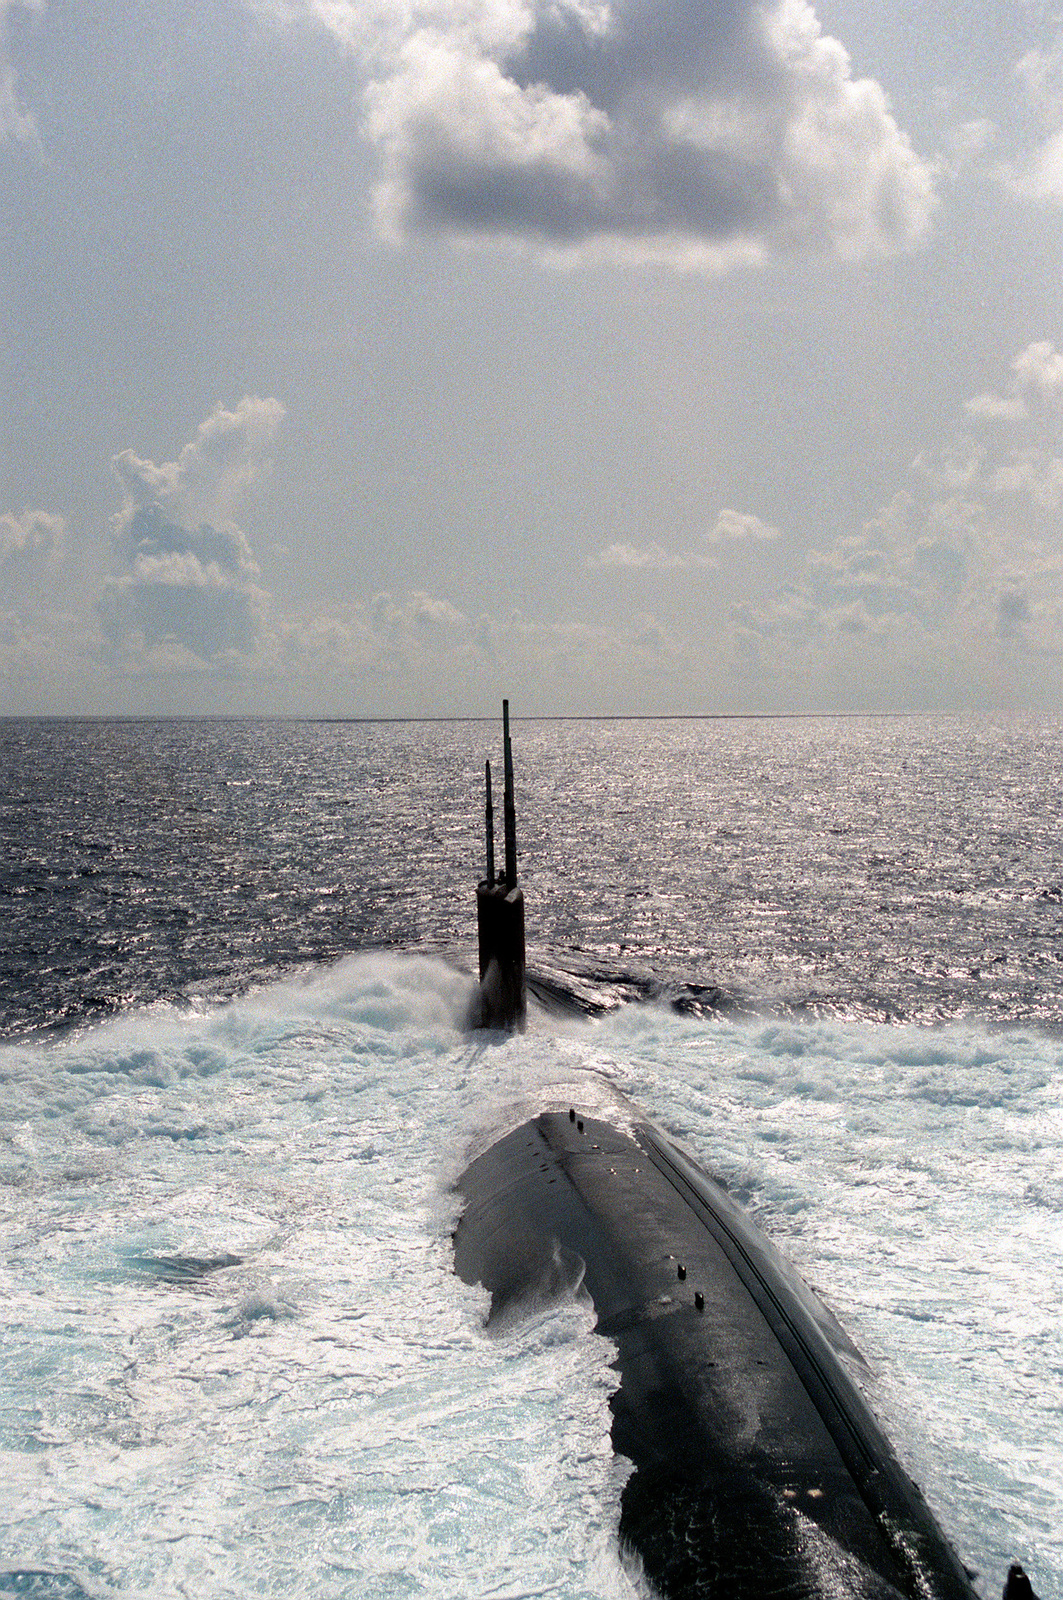 A stern view of the nuclear-powered attack submarine USS ALEXANDRIA (SSN-757) underway during post-commissioning trials off Andros Island, Bahamas. The ALEXANDRIA was commissioned on June 29, 1991.